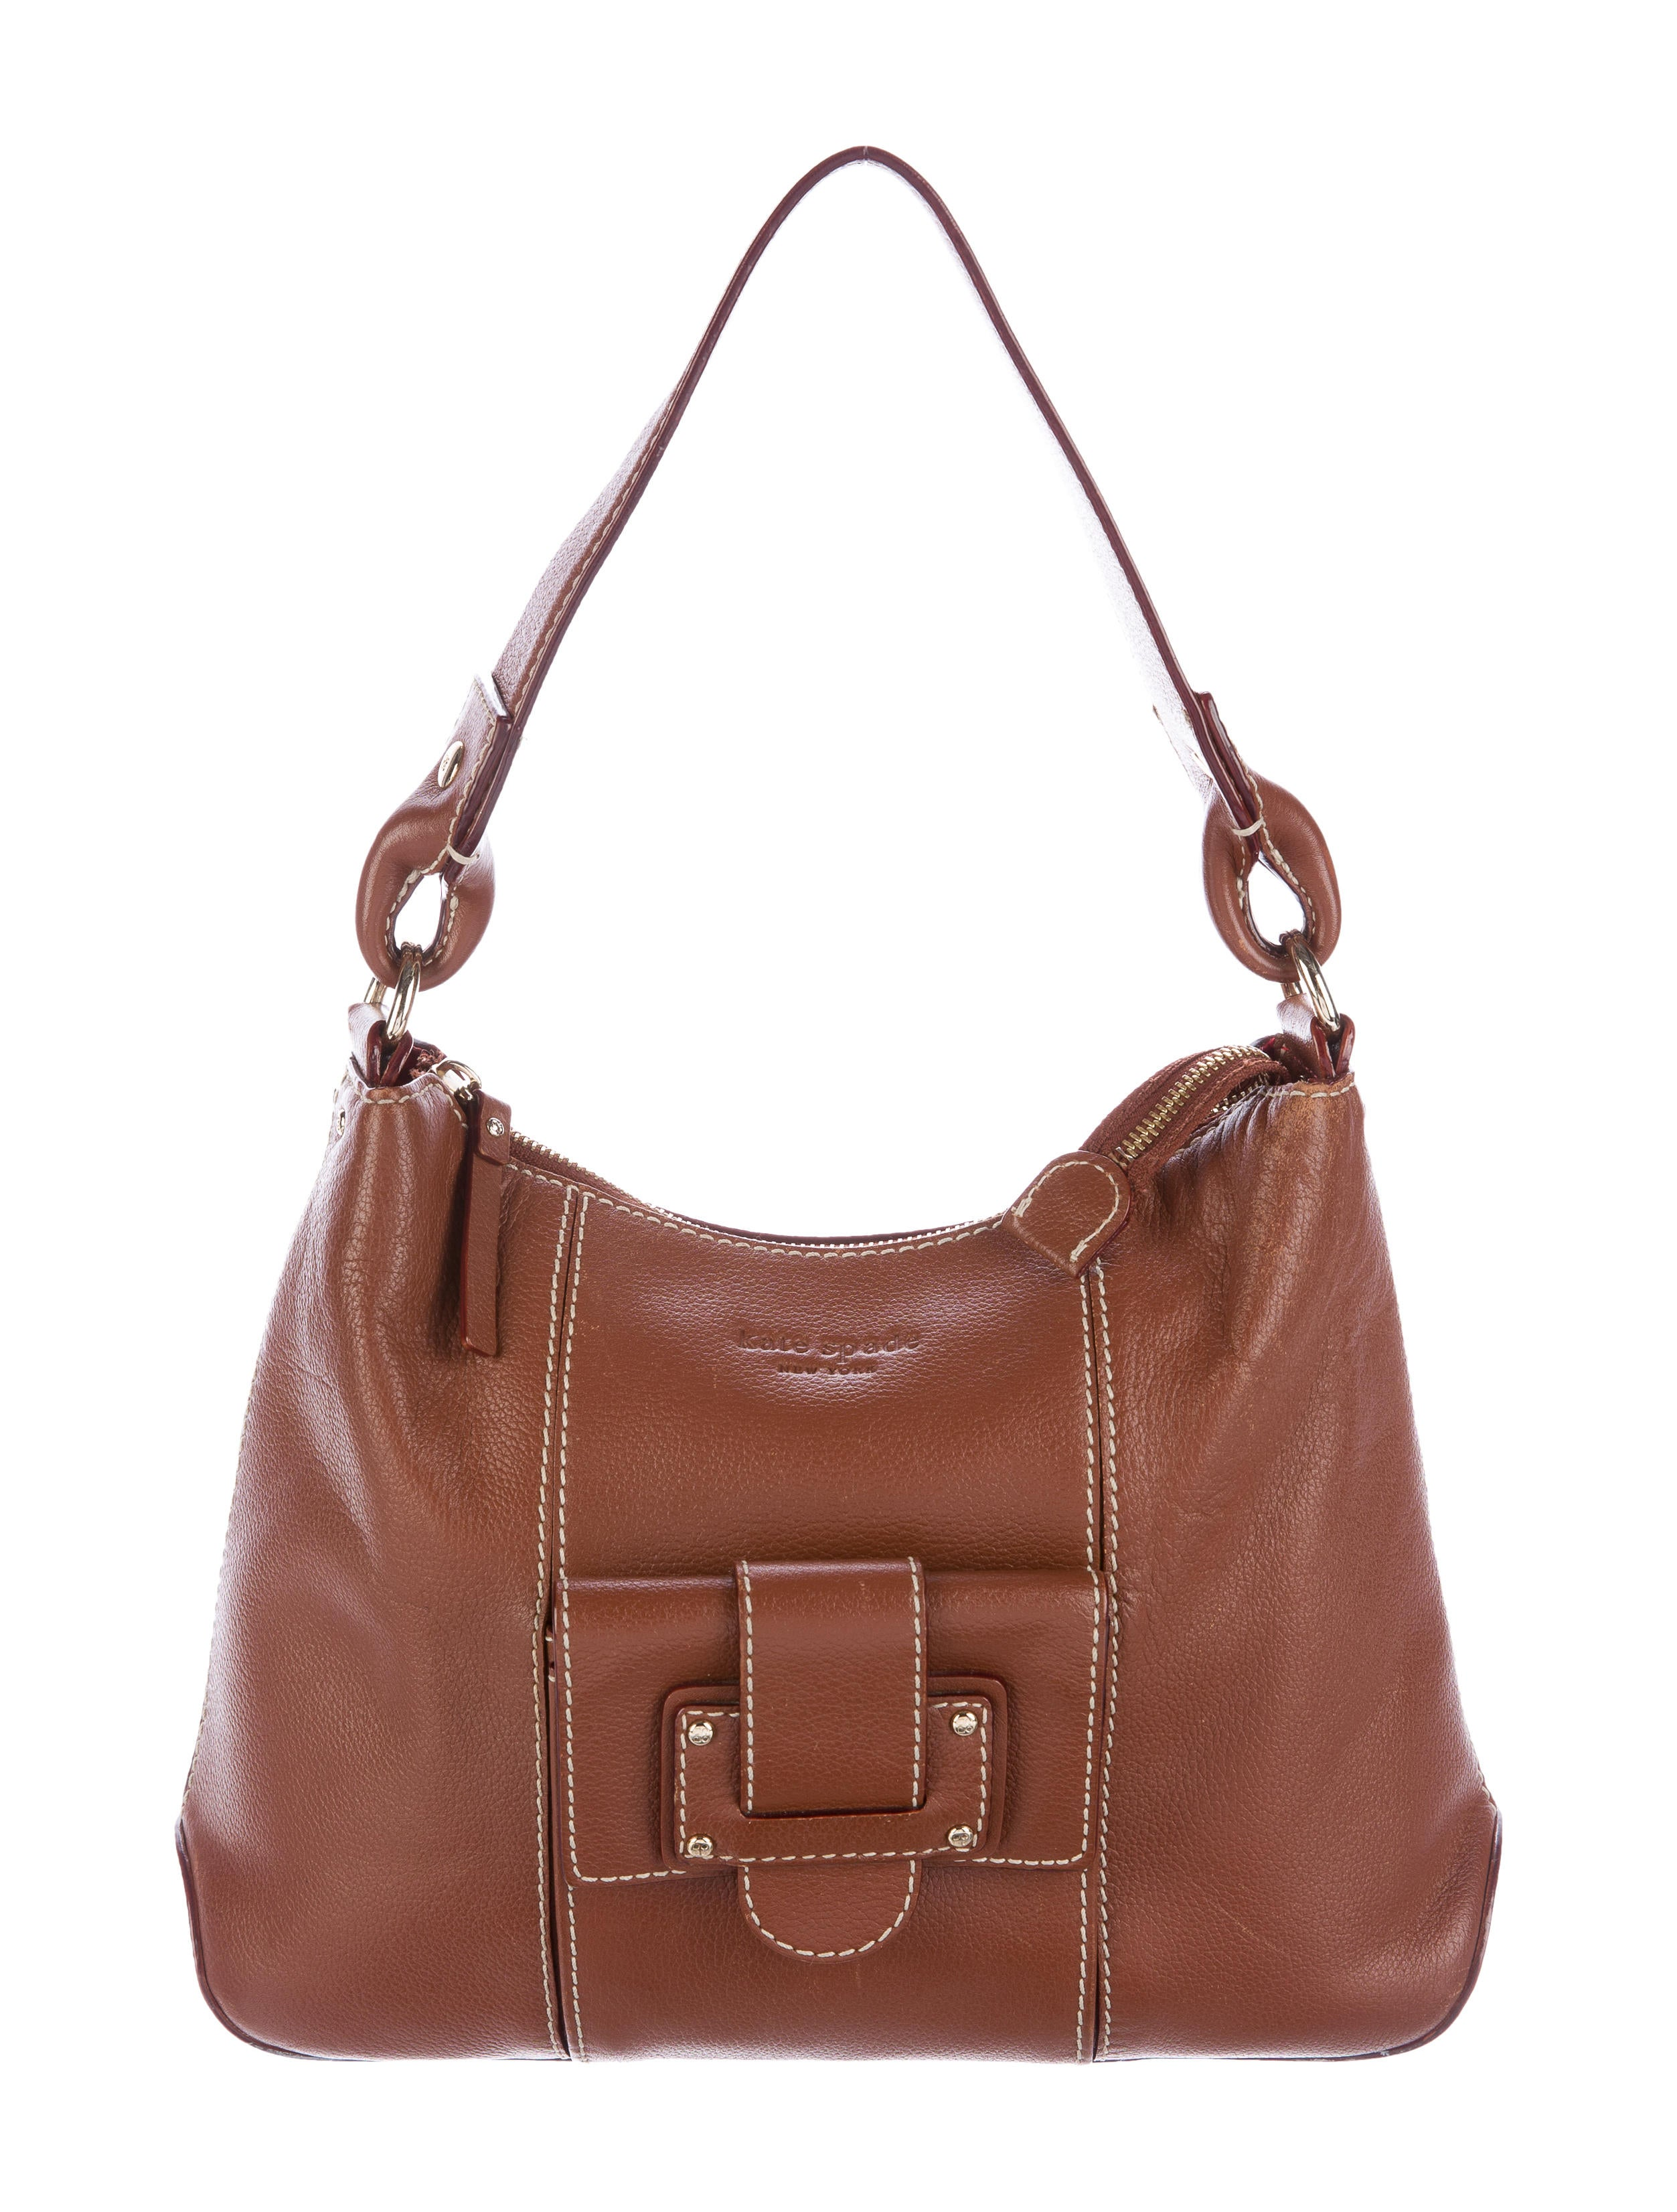 Free shipping on women's bags and purses at gothicphotos.ga Shop tote bags, shoulder, clutch, crossbody, leather handbags and more. Totally free shipping and returns.